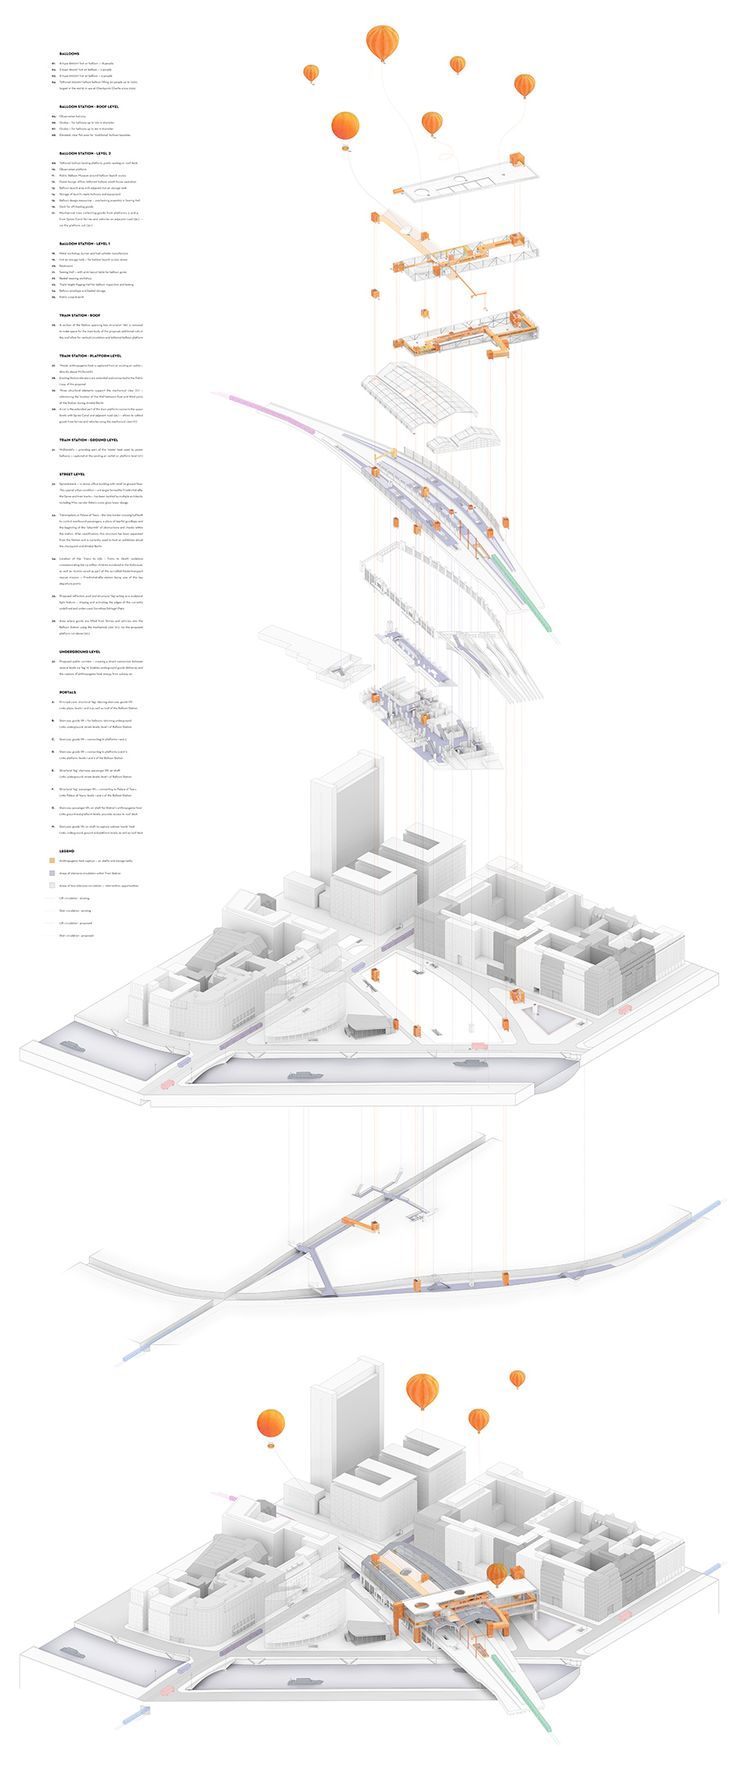 010_Exploded-axonometric_relationship-between-Balloon-Station-and-context-on-all-levels